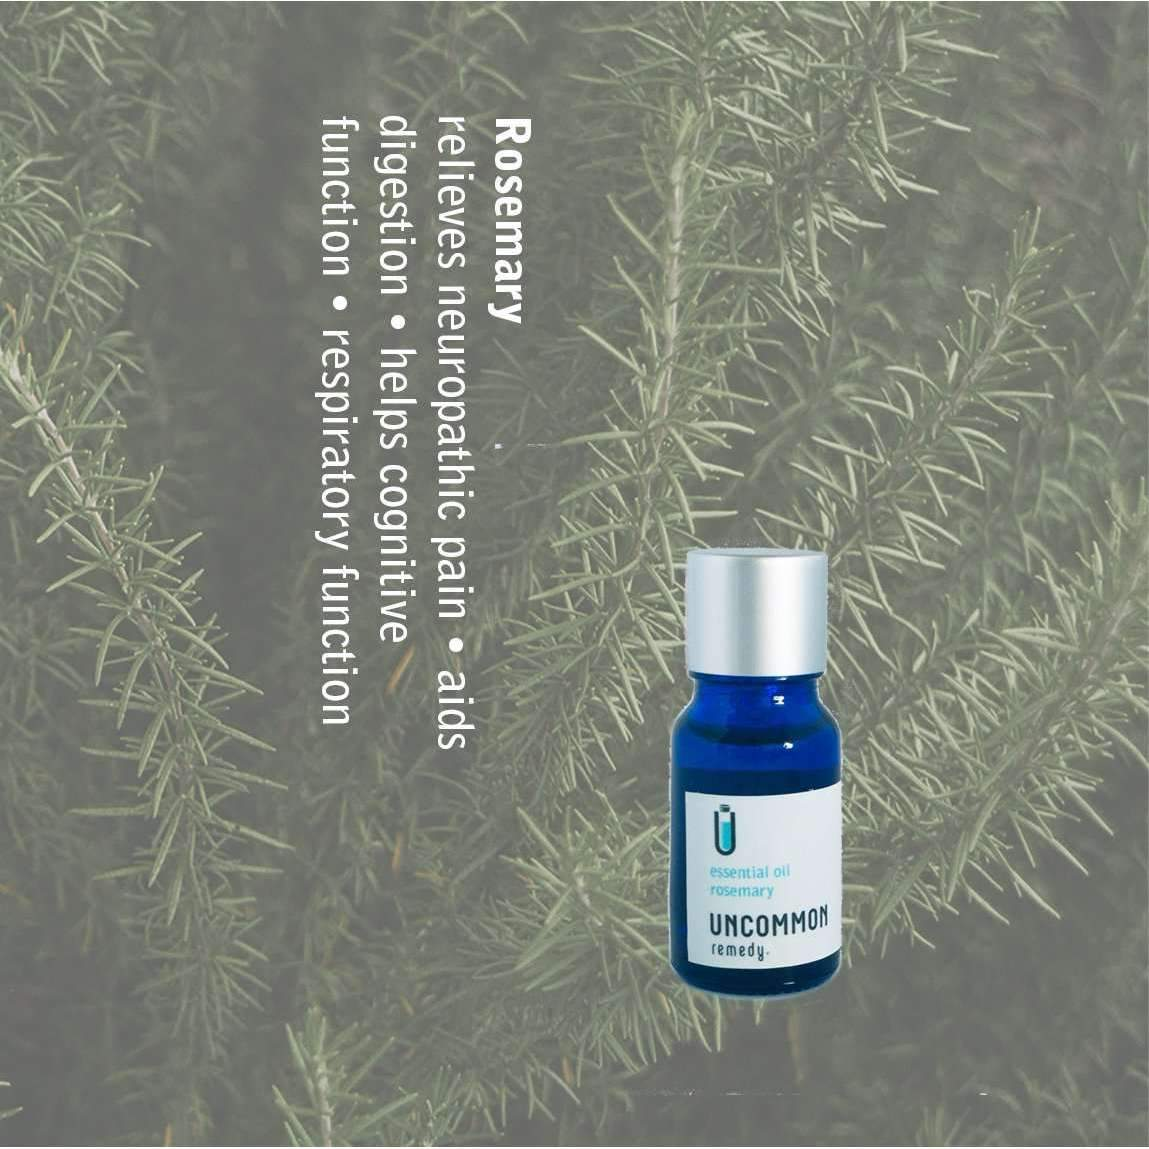 Uncommon Remedy Rosemary Essential Oil (rosemarinus officinalis) 10ml-oil-Uncommon Remedy